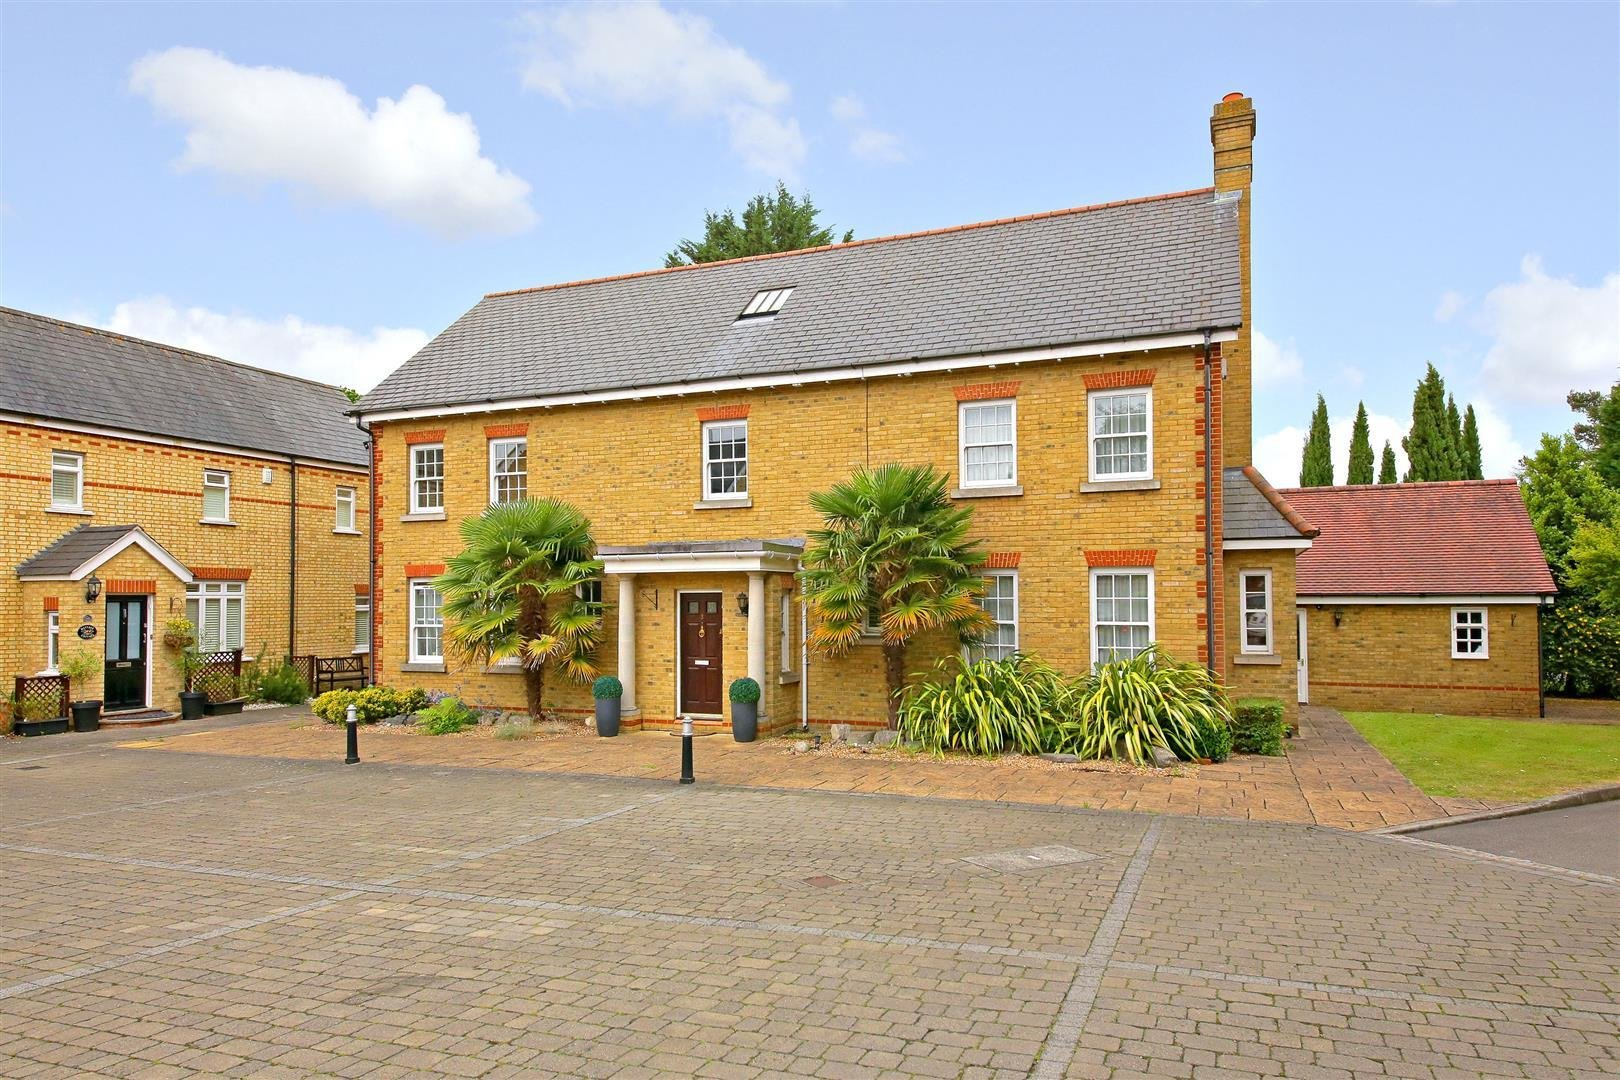 Best 6 Bedroom House For Sale In Elstree Borehamwood With Pictures